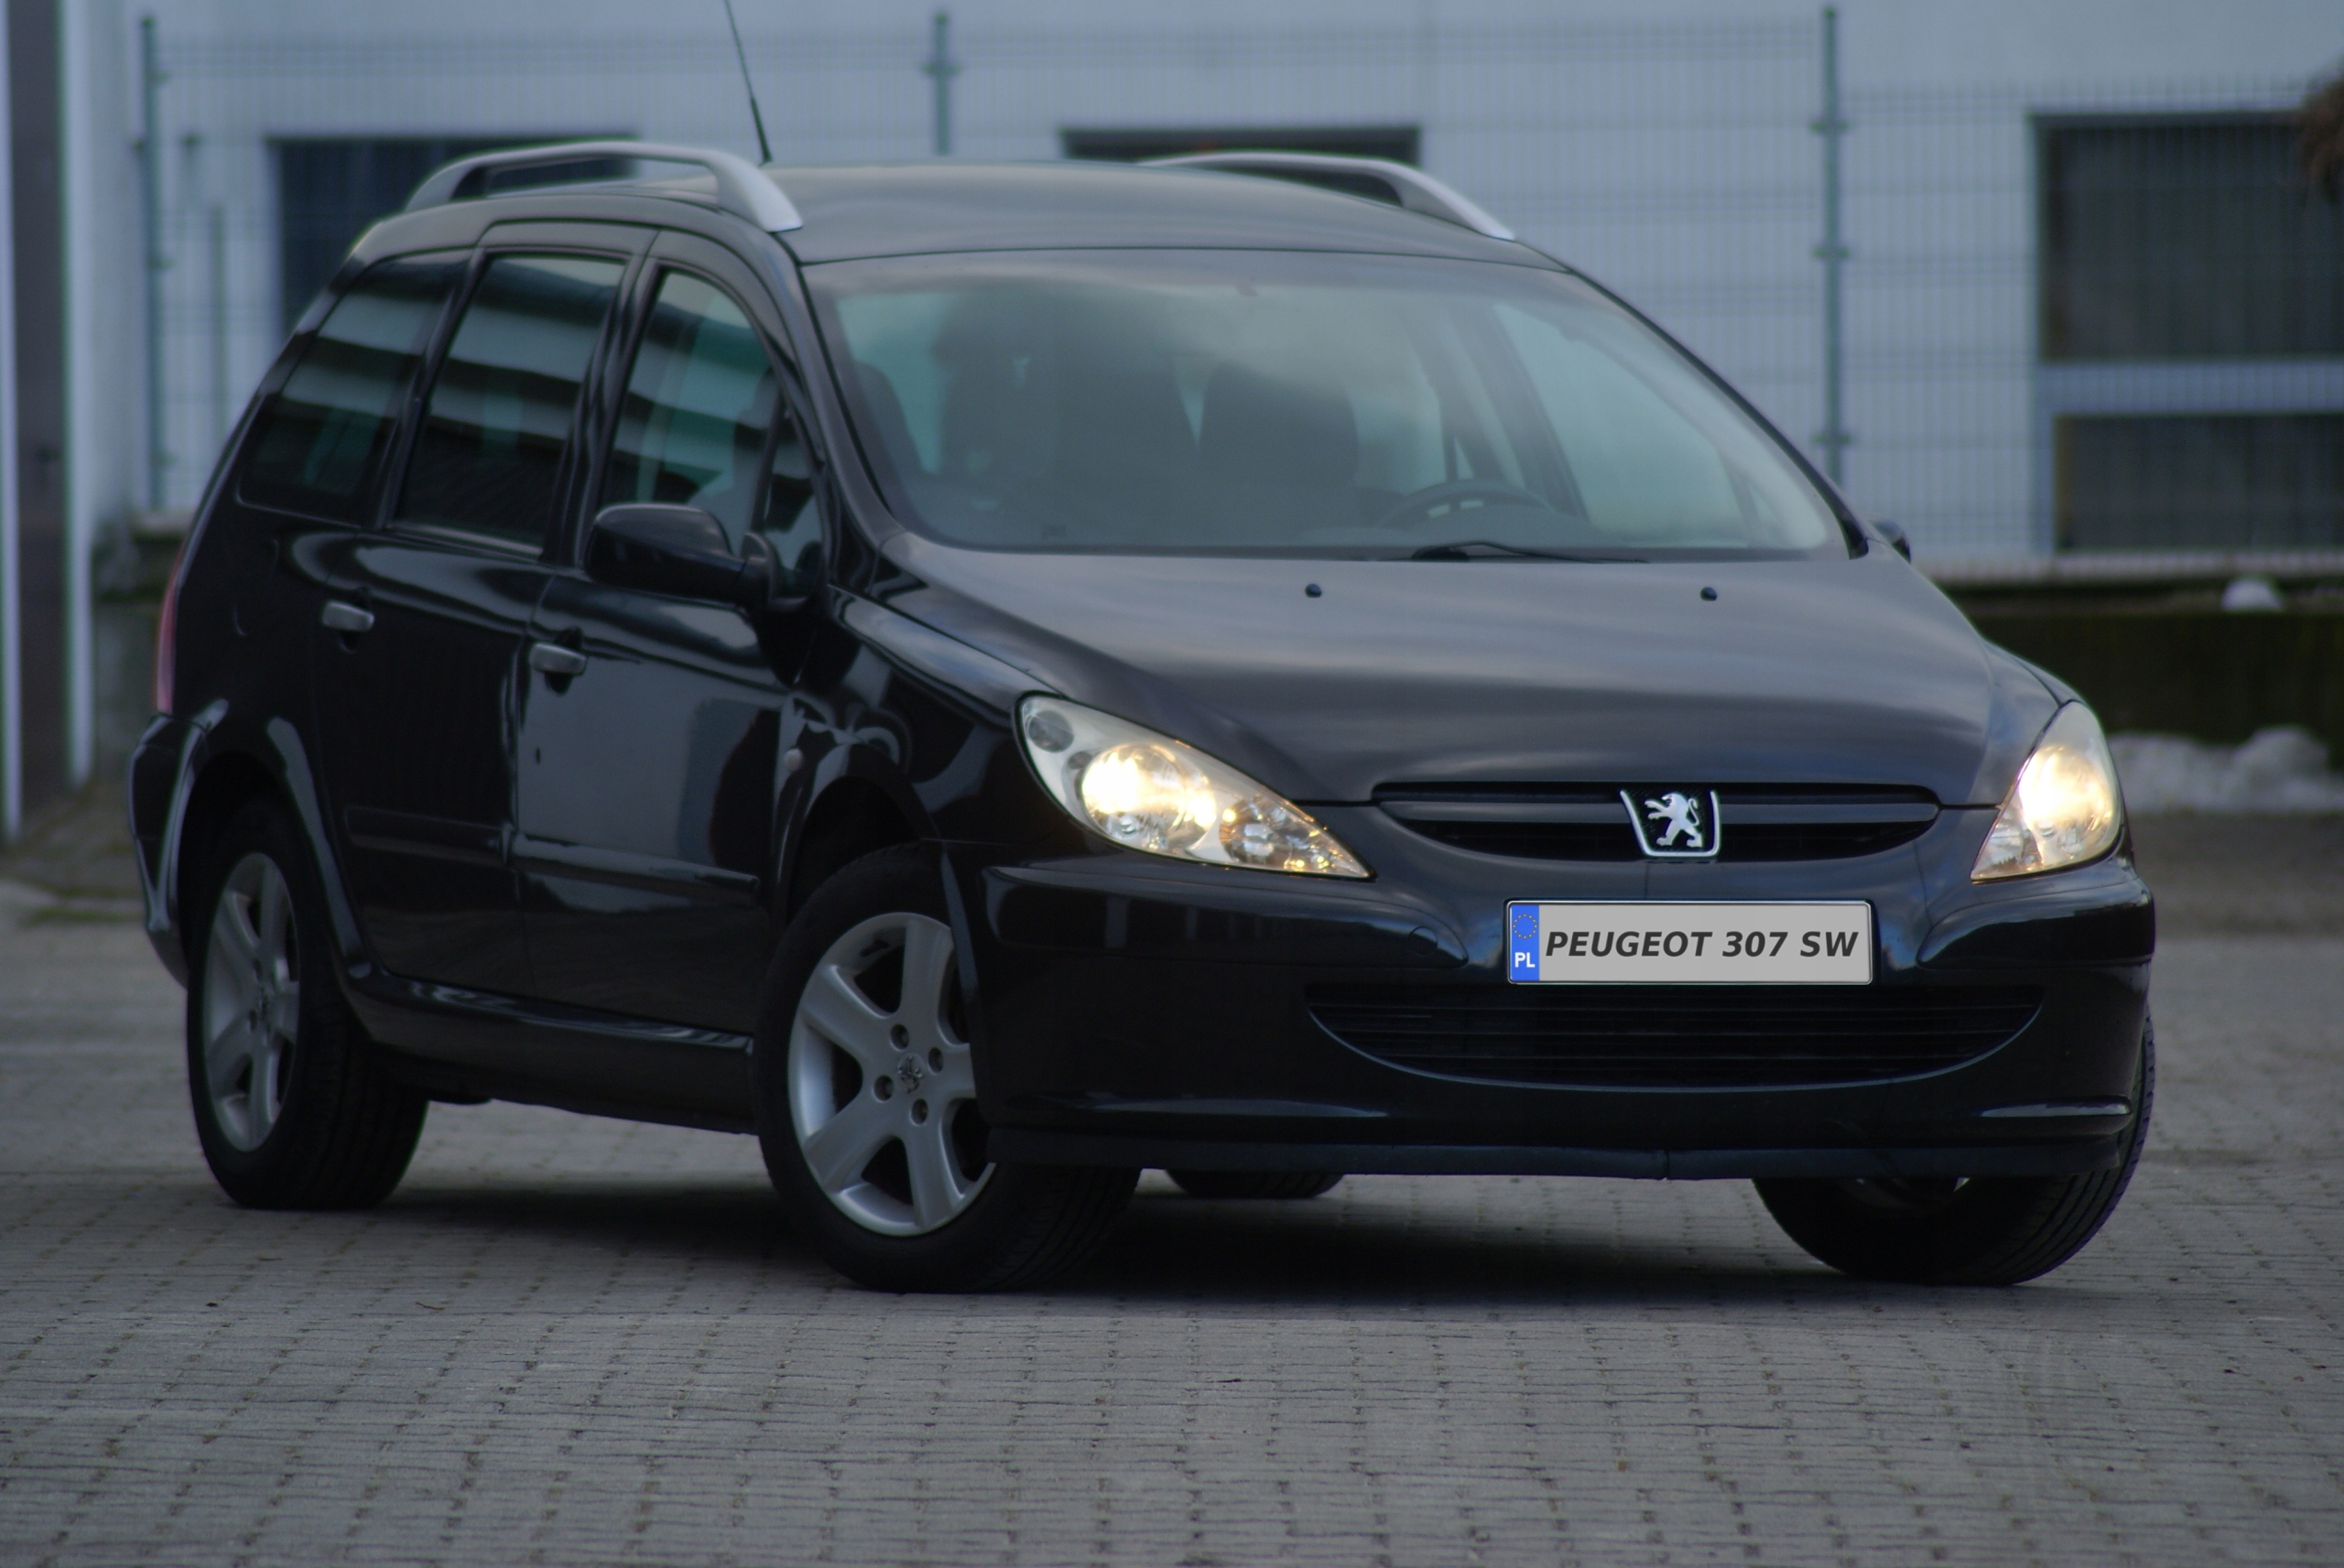 Peugeot 307 SW # Panorama Dach #